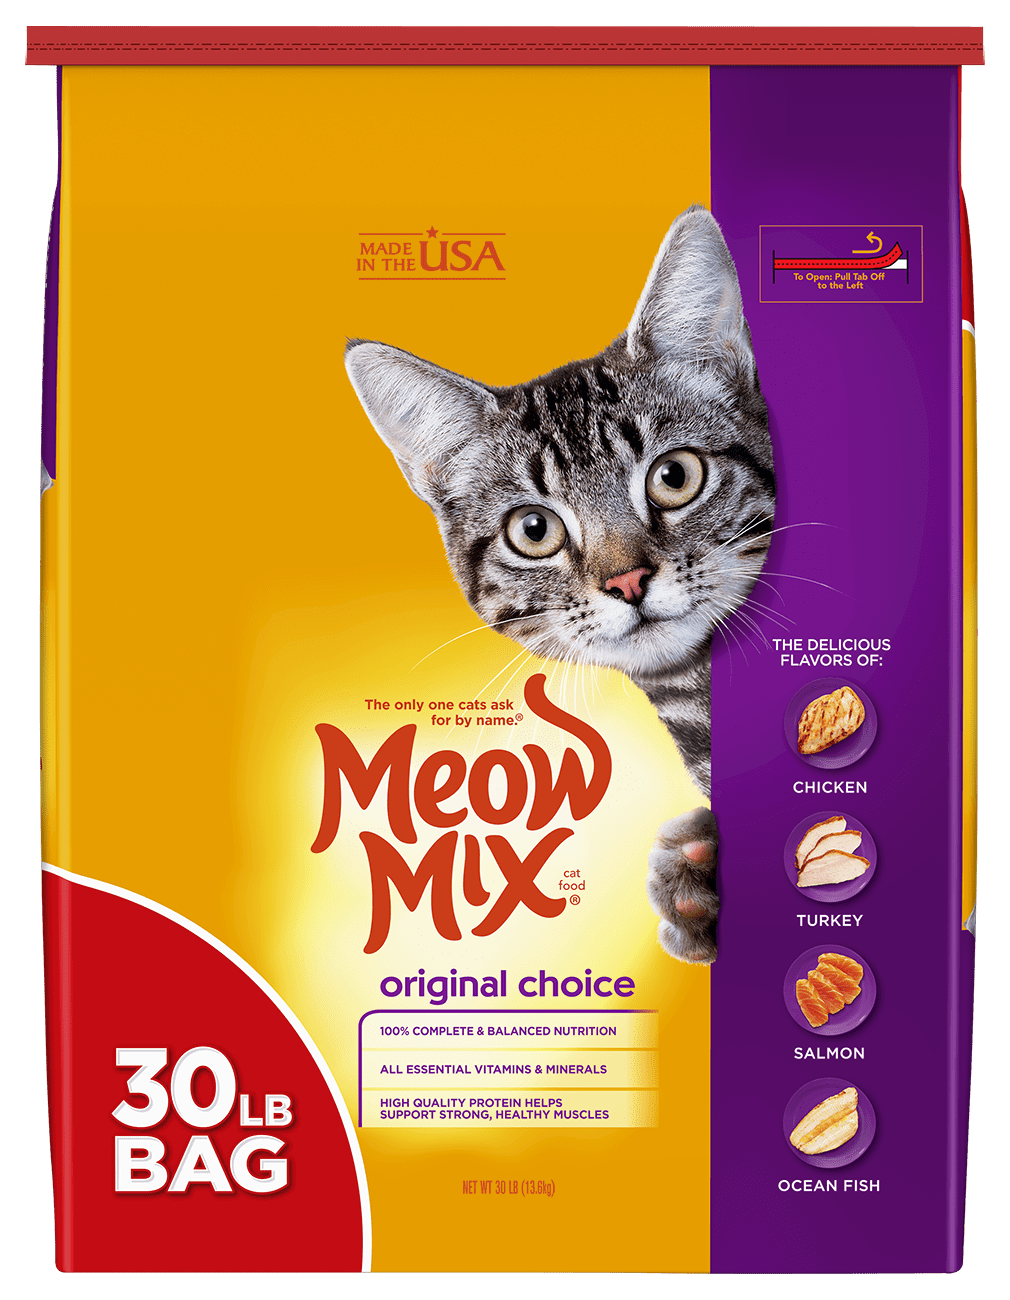 Click here to buy Meow Mix Original Choice Dry Cat Food, 30 lb by The J.M. Smucker Company.